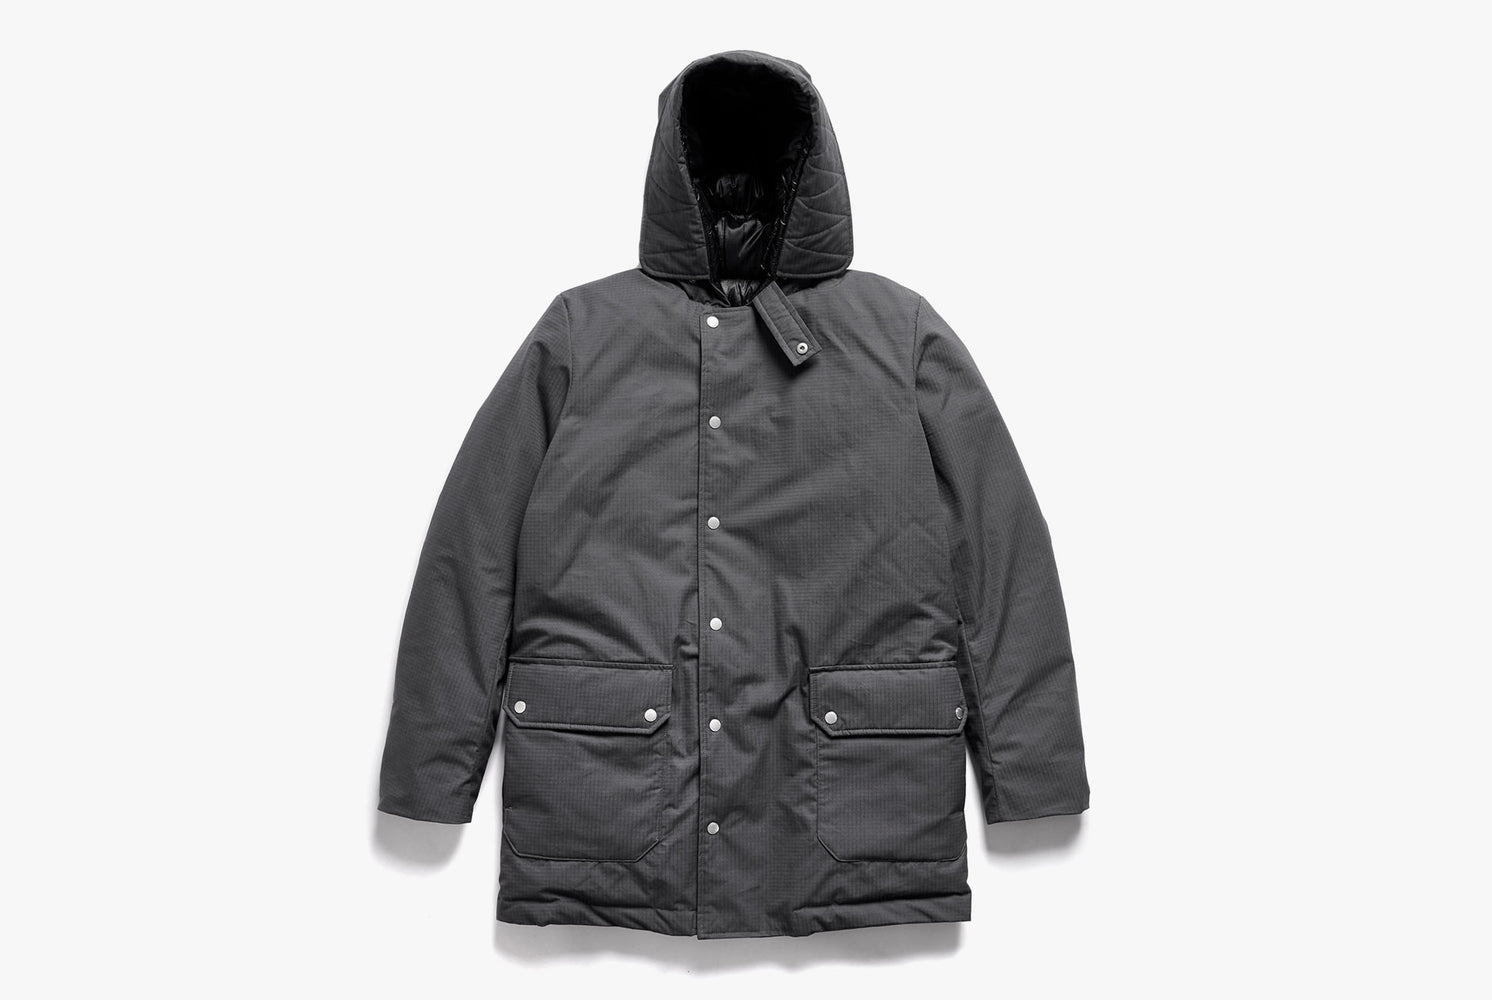 Gray American Trench x Gear Patrol Parka - front view showing buttons and hood up on white background